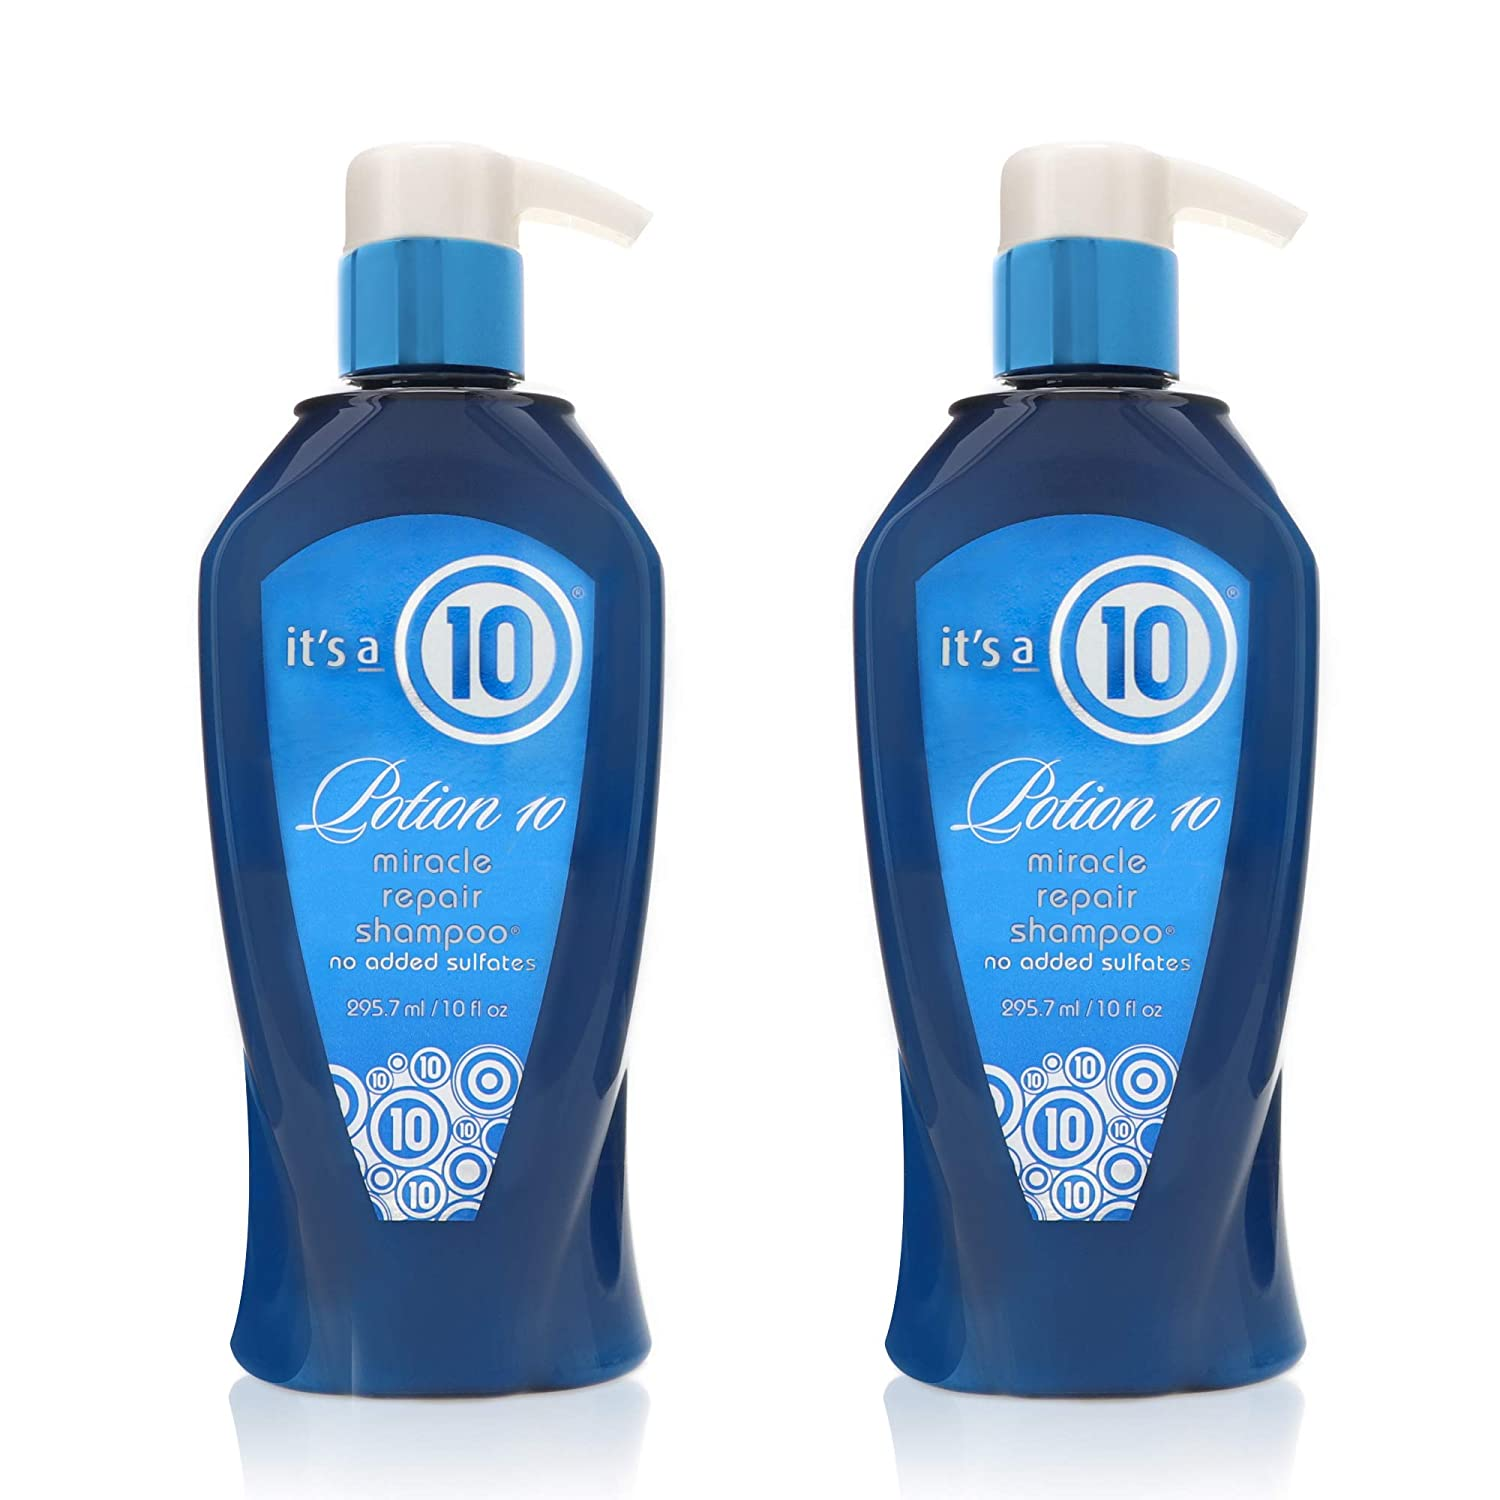 it's a 10 Haircare Potion 10 Miracle Repair Shampoo, 10 fl. oz. (Pack of 2)